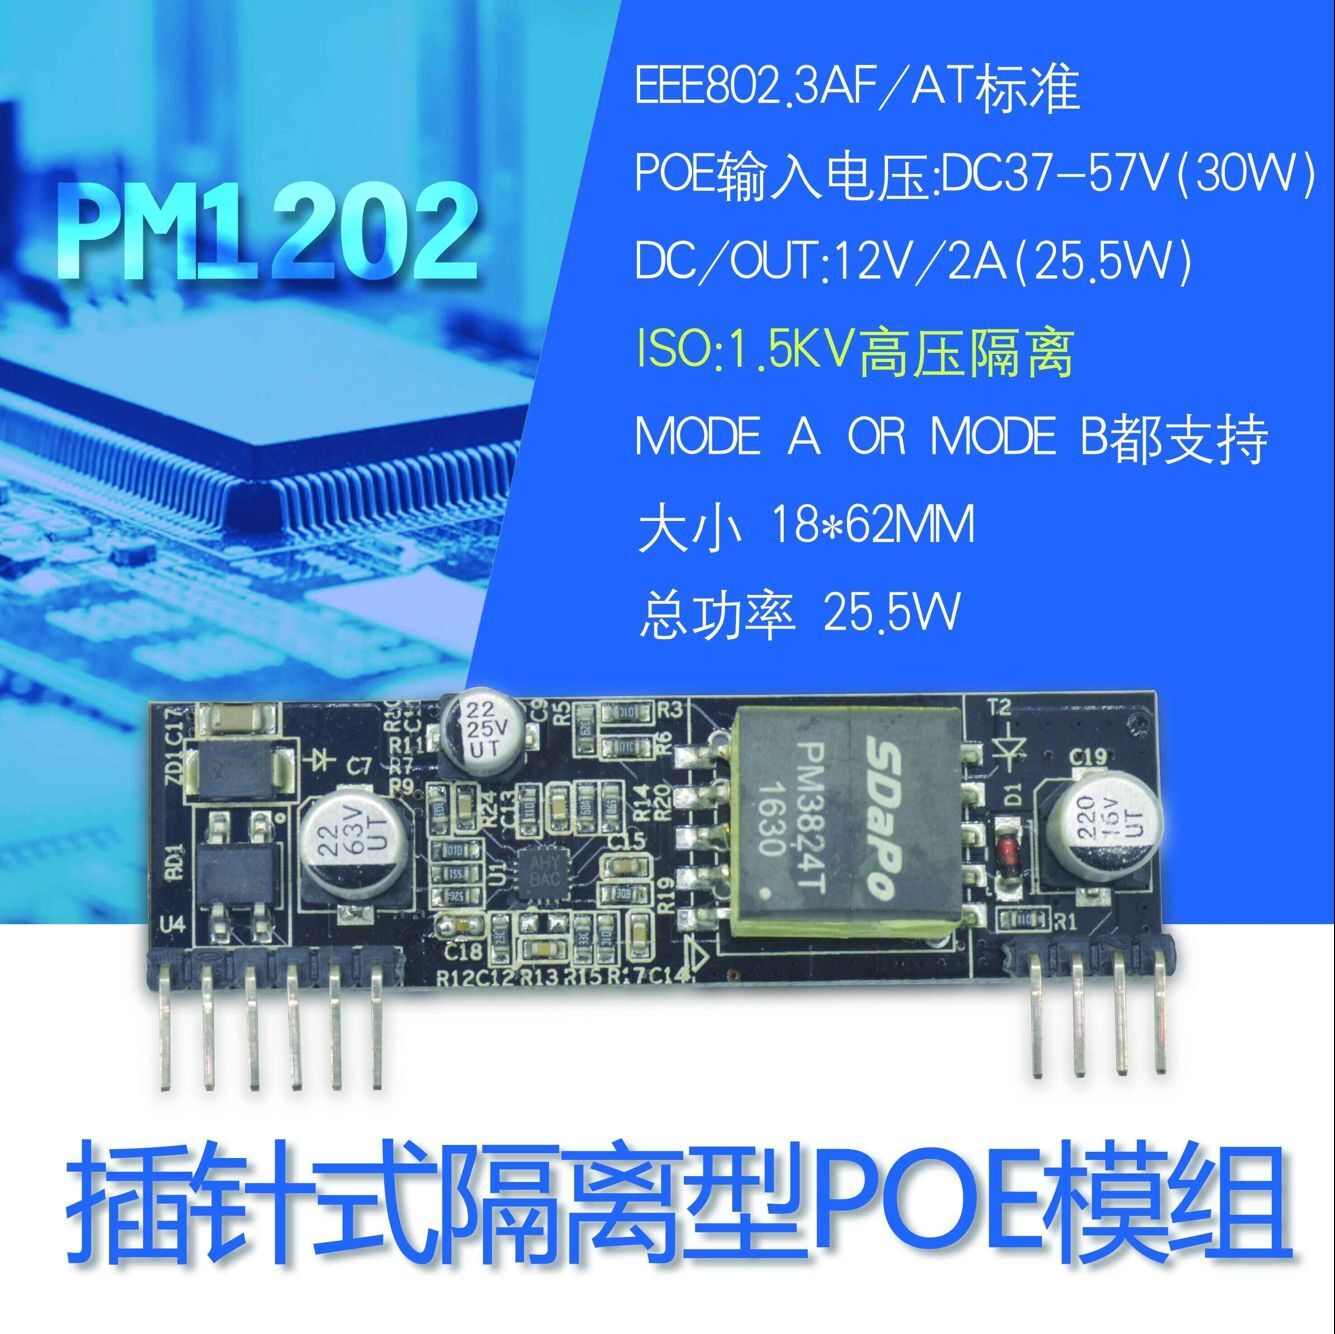 12V 2A POE <font><b>Module</b></font>, Poe Power Supply <font><b>Module</b></font>, <font><b>PD</b></font> <font><b>Module</b></font>/IEEE802.3at PM1202 image